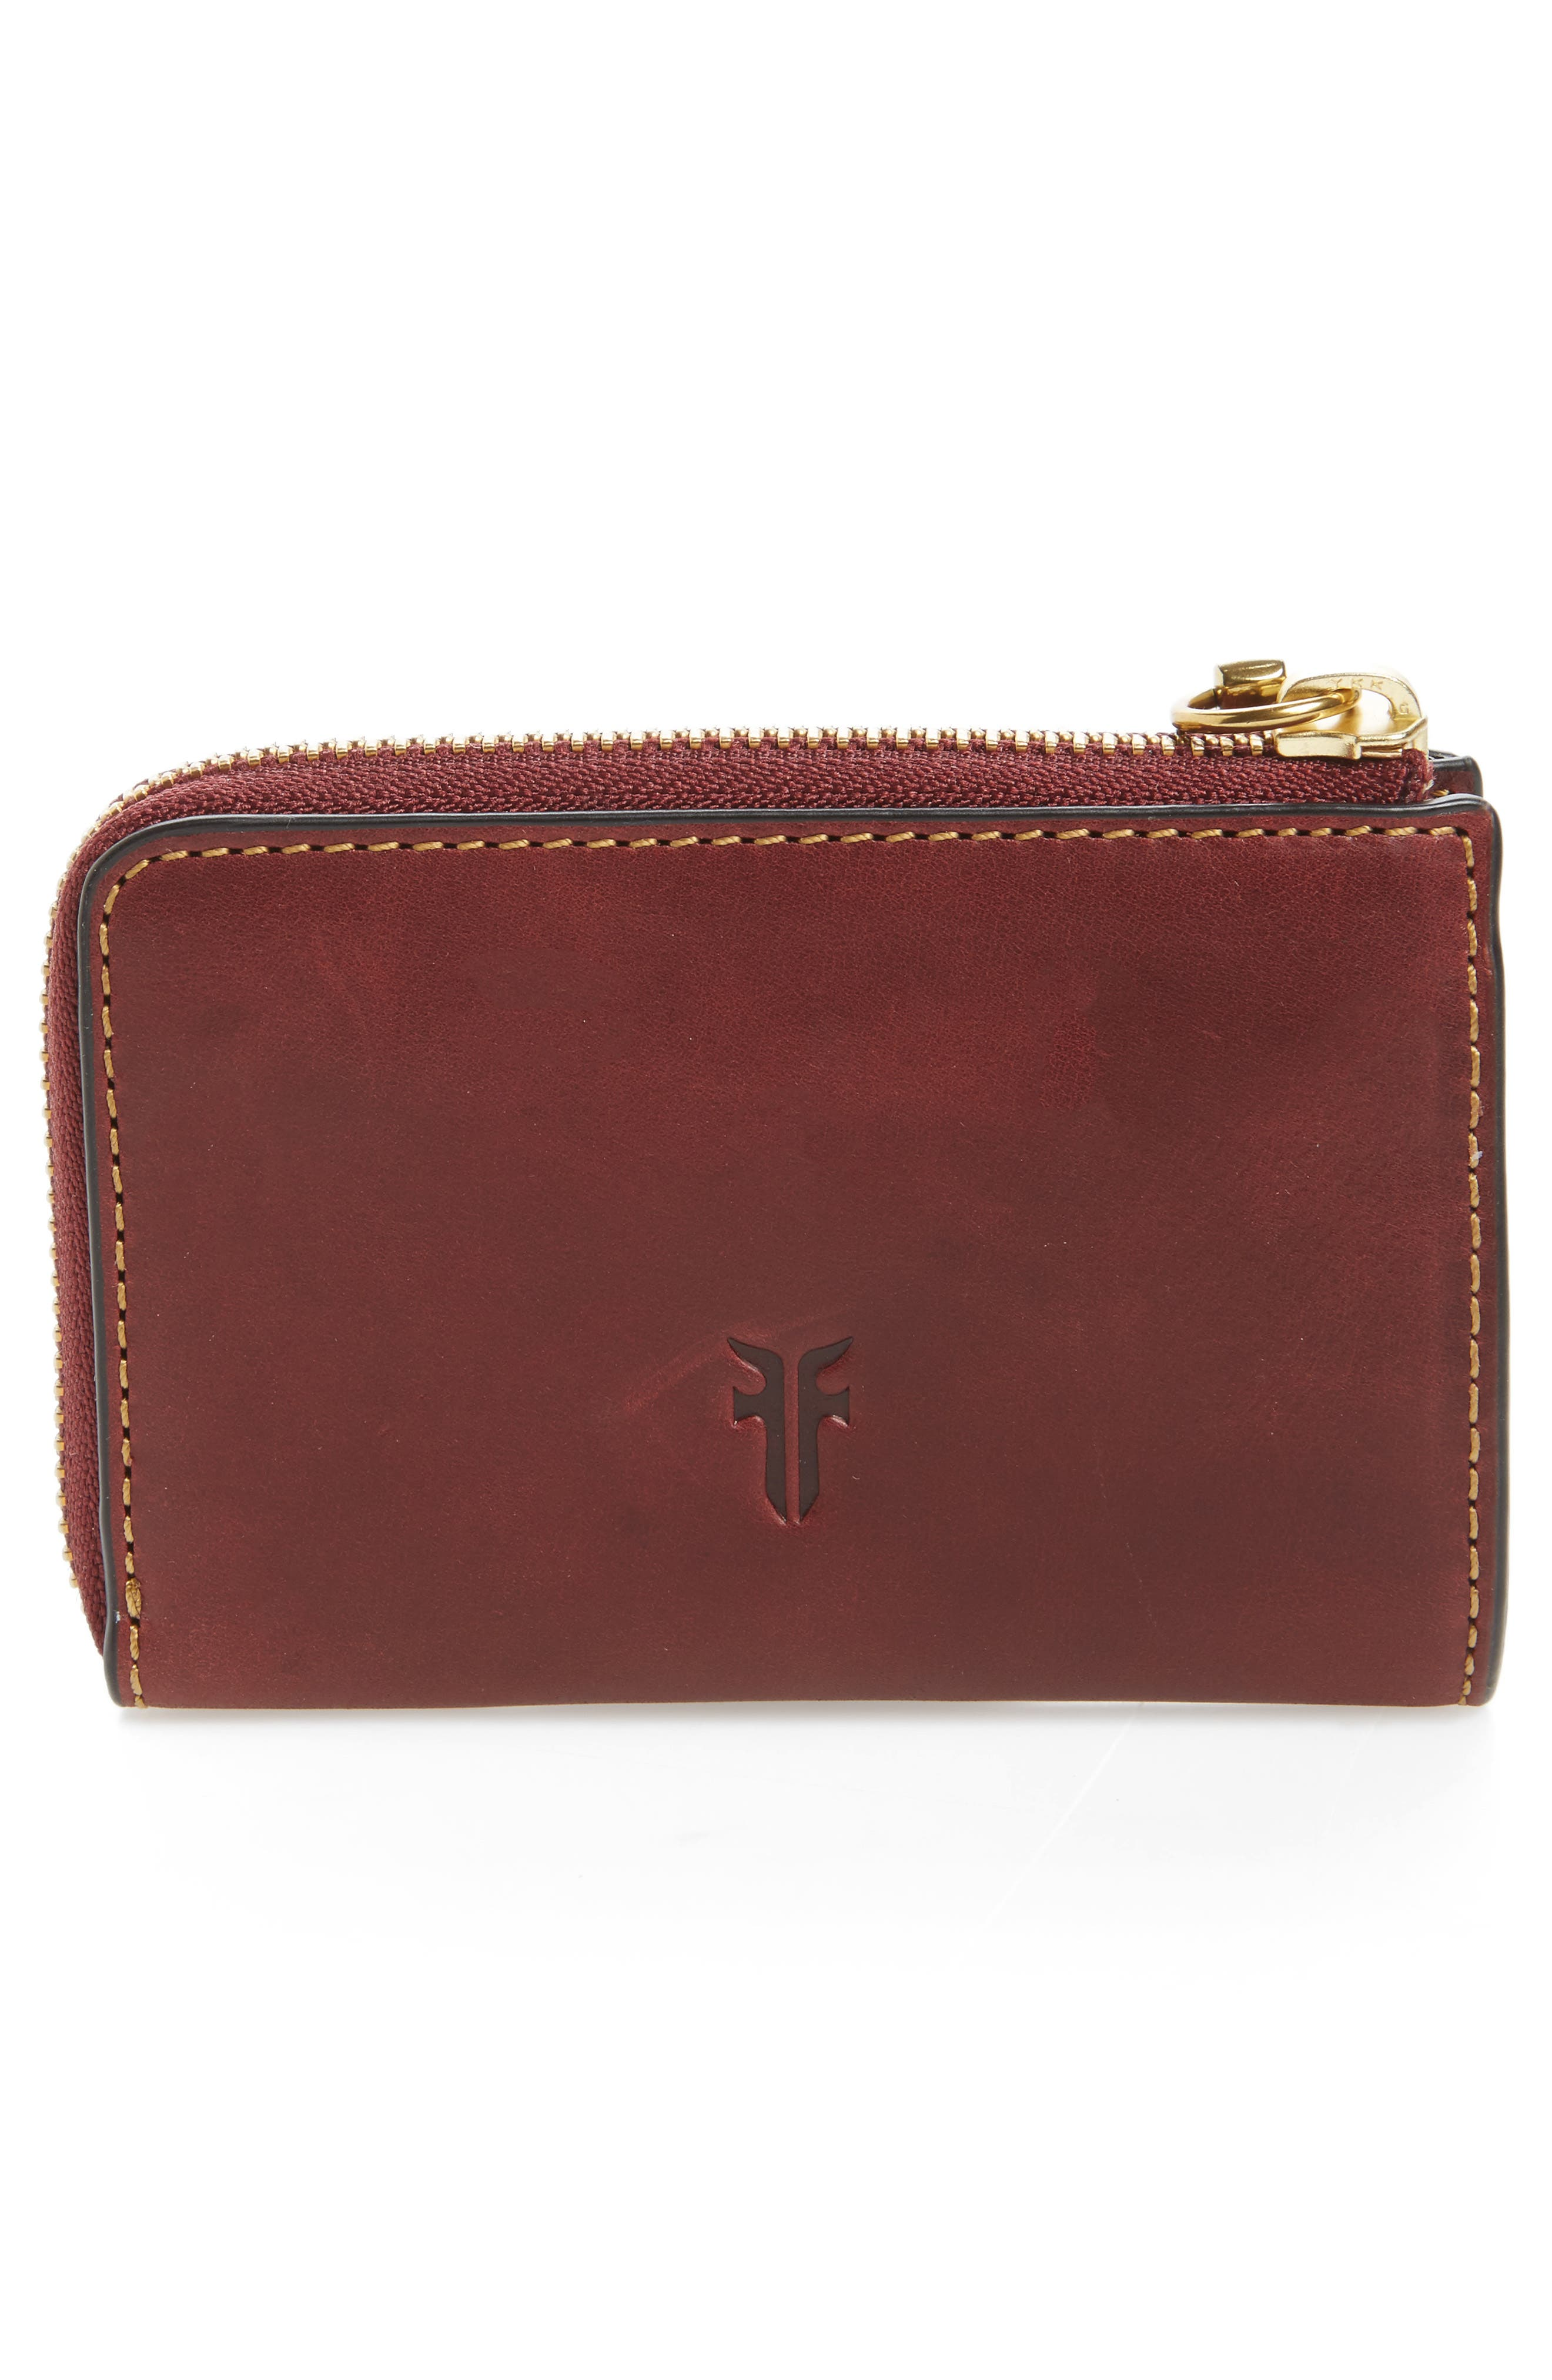 Small Ilana Harness Zip Leather Wallet,                             Alternate thumbnail 4, color,                             Wine